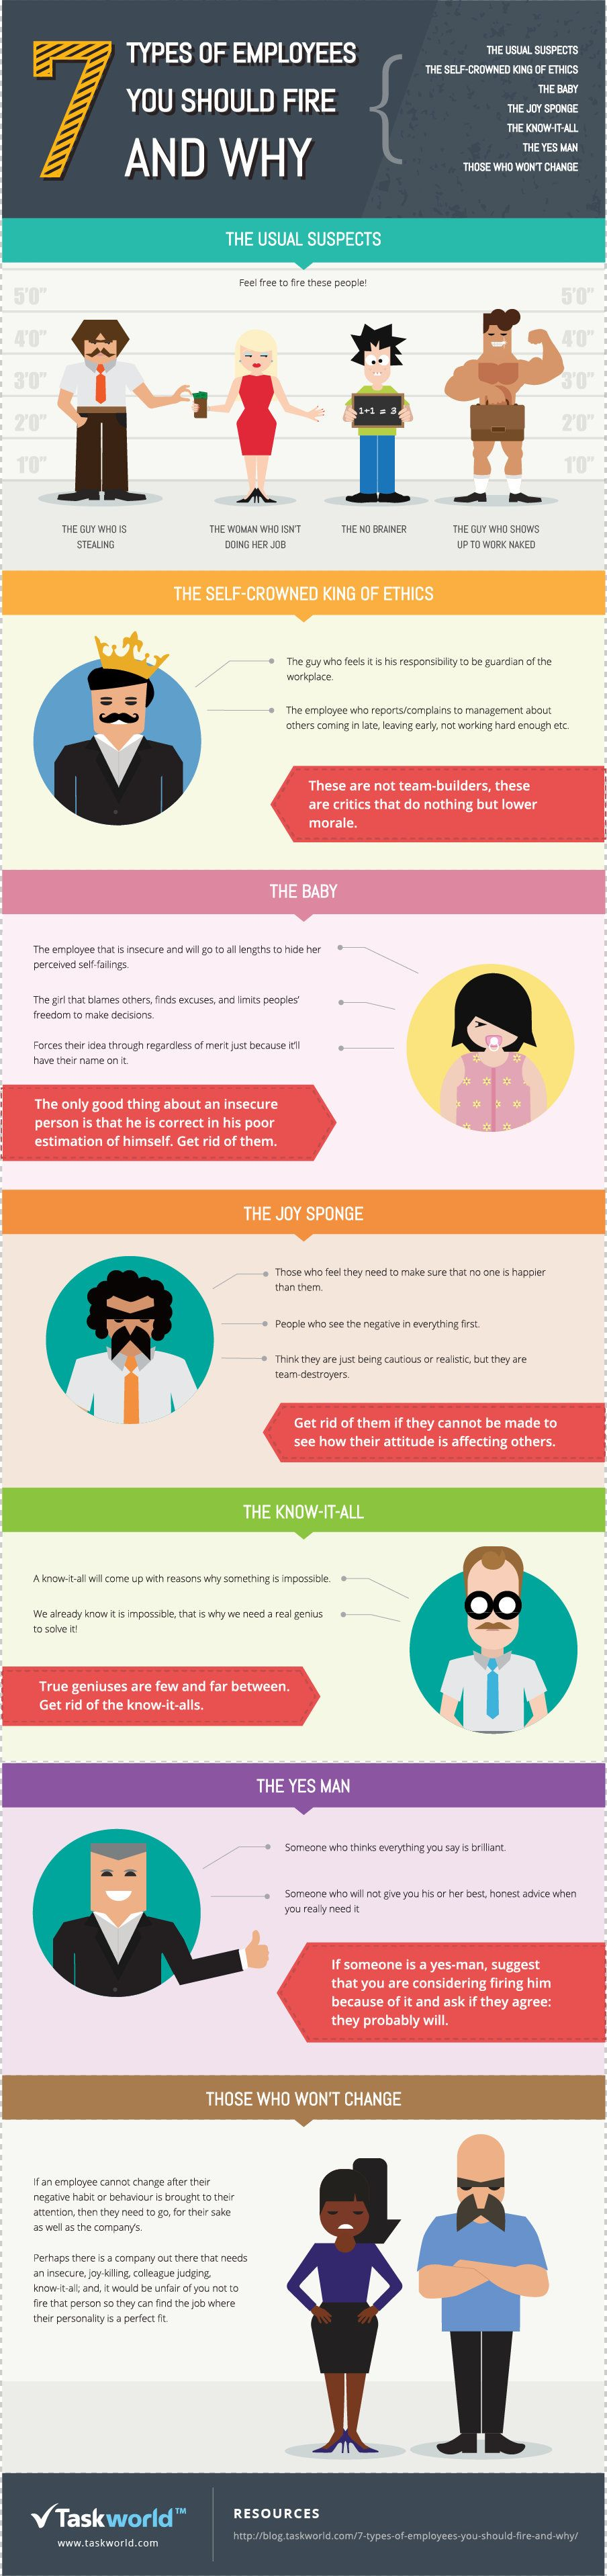 7 Types People You Don't Want to Work With